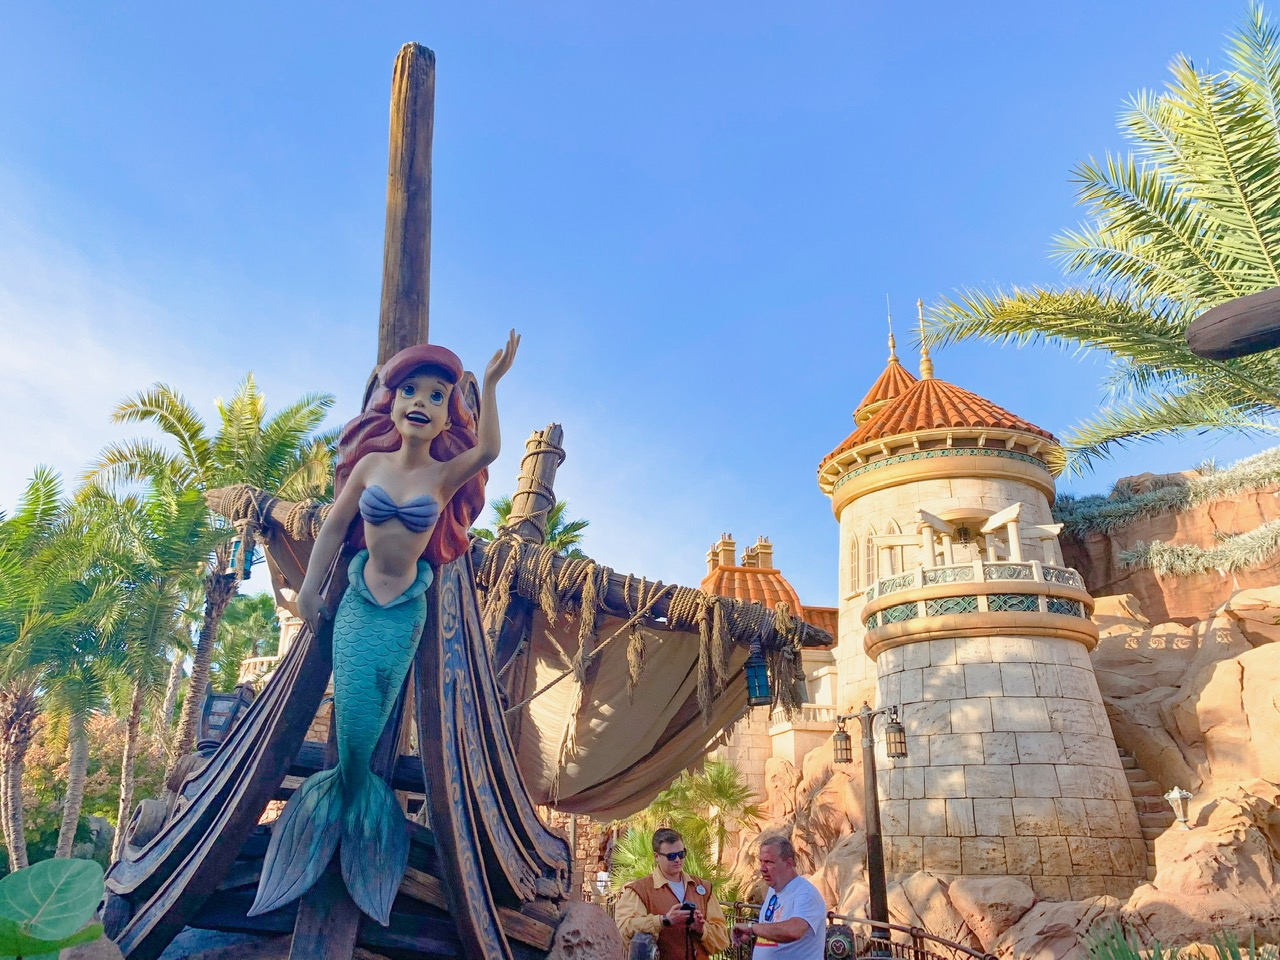 Voyage Into the Little Mermaid ride at Magic Kingdom